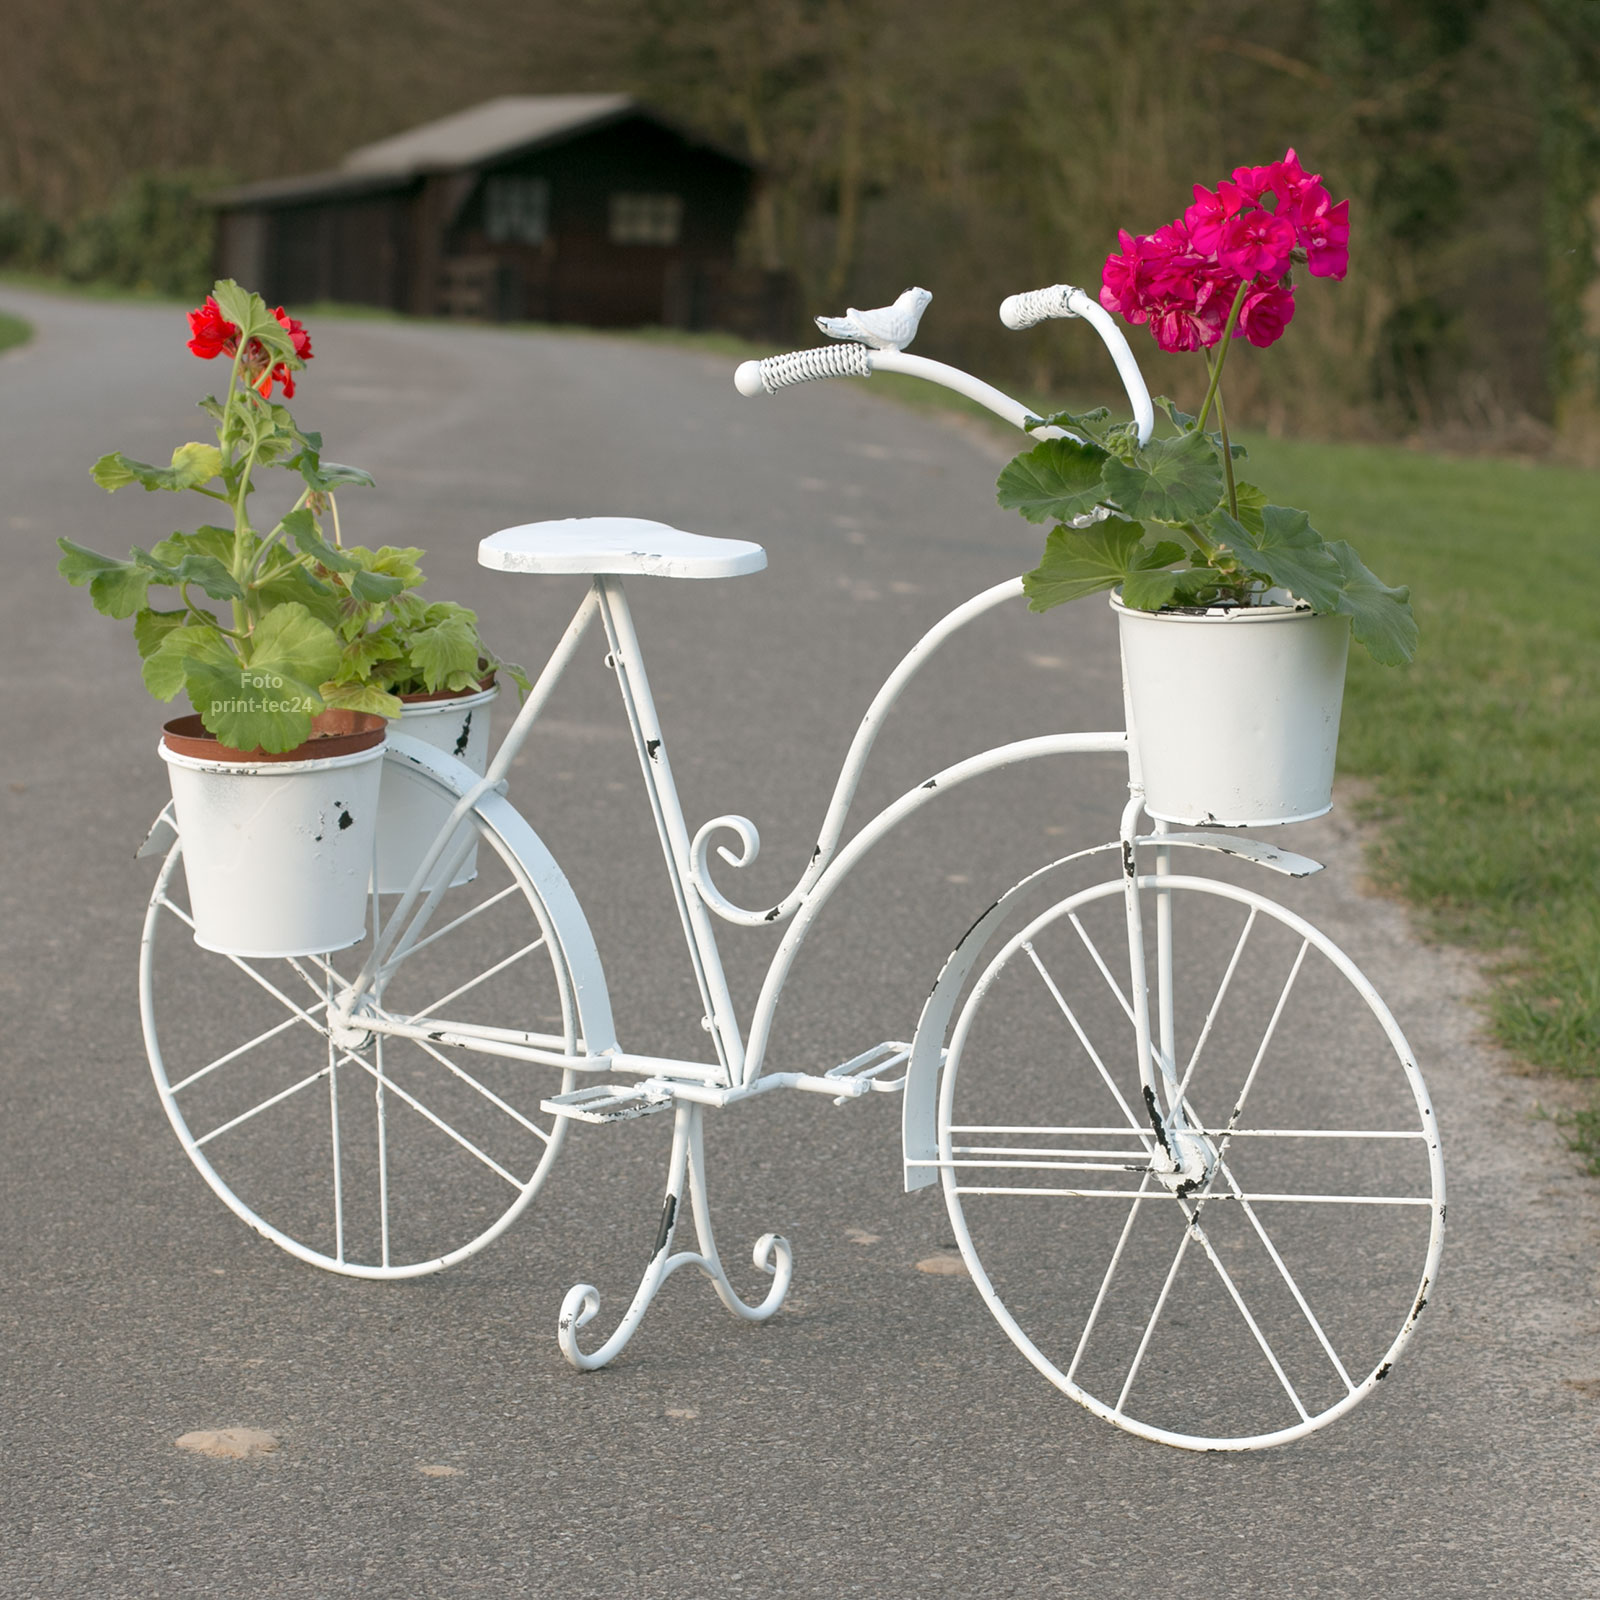 pflanzfahrrad metall wei dekofahrrad gartendeko pflanztopf blumenfahrrad shabby ebay. Black Bedroom Furniture Sets. Home Design Ideas